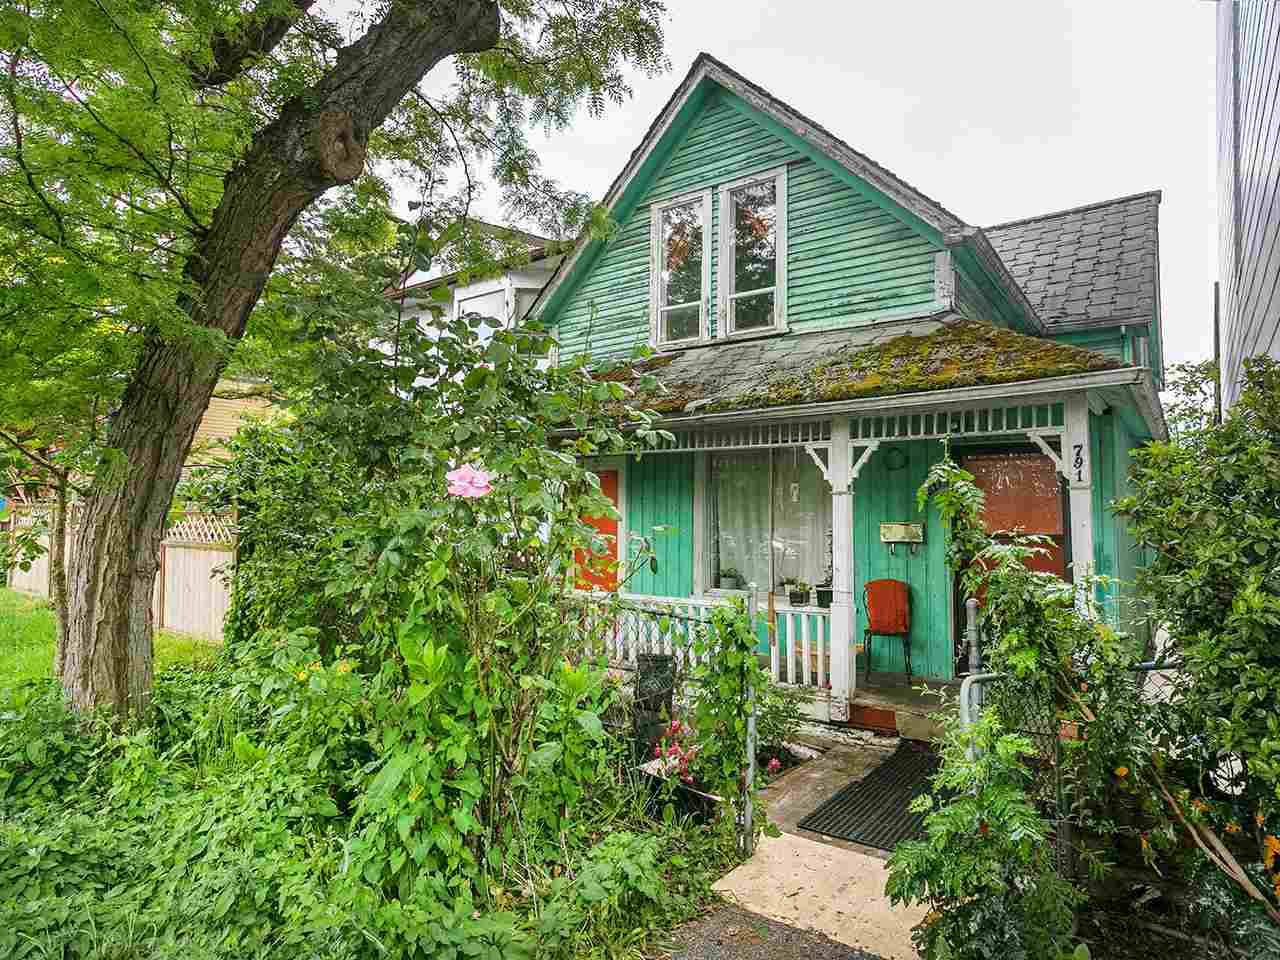 Main Photo: 791 KEEFER Street in Vancouver: Mount Pleasant VE House for sale (Vancouver East)  : MLS® # R2172392